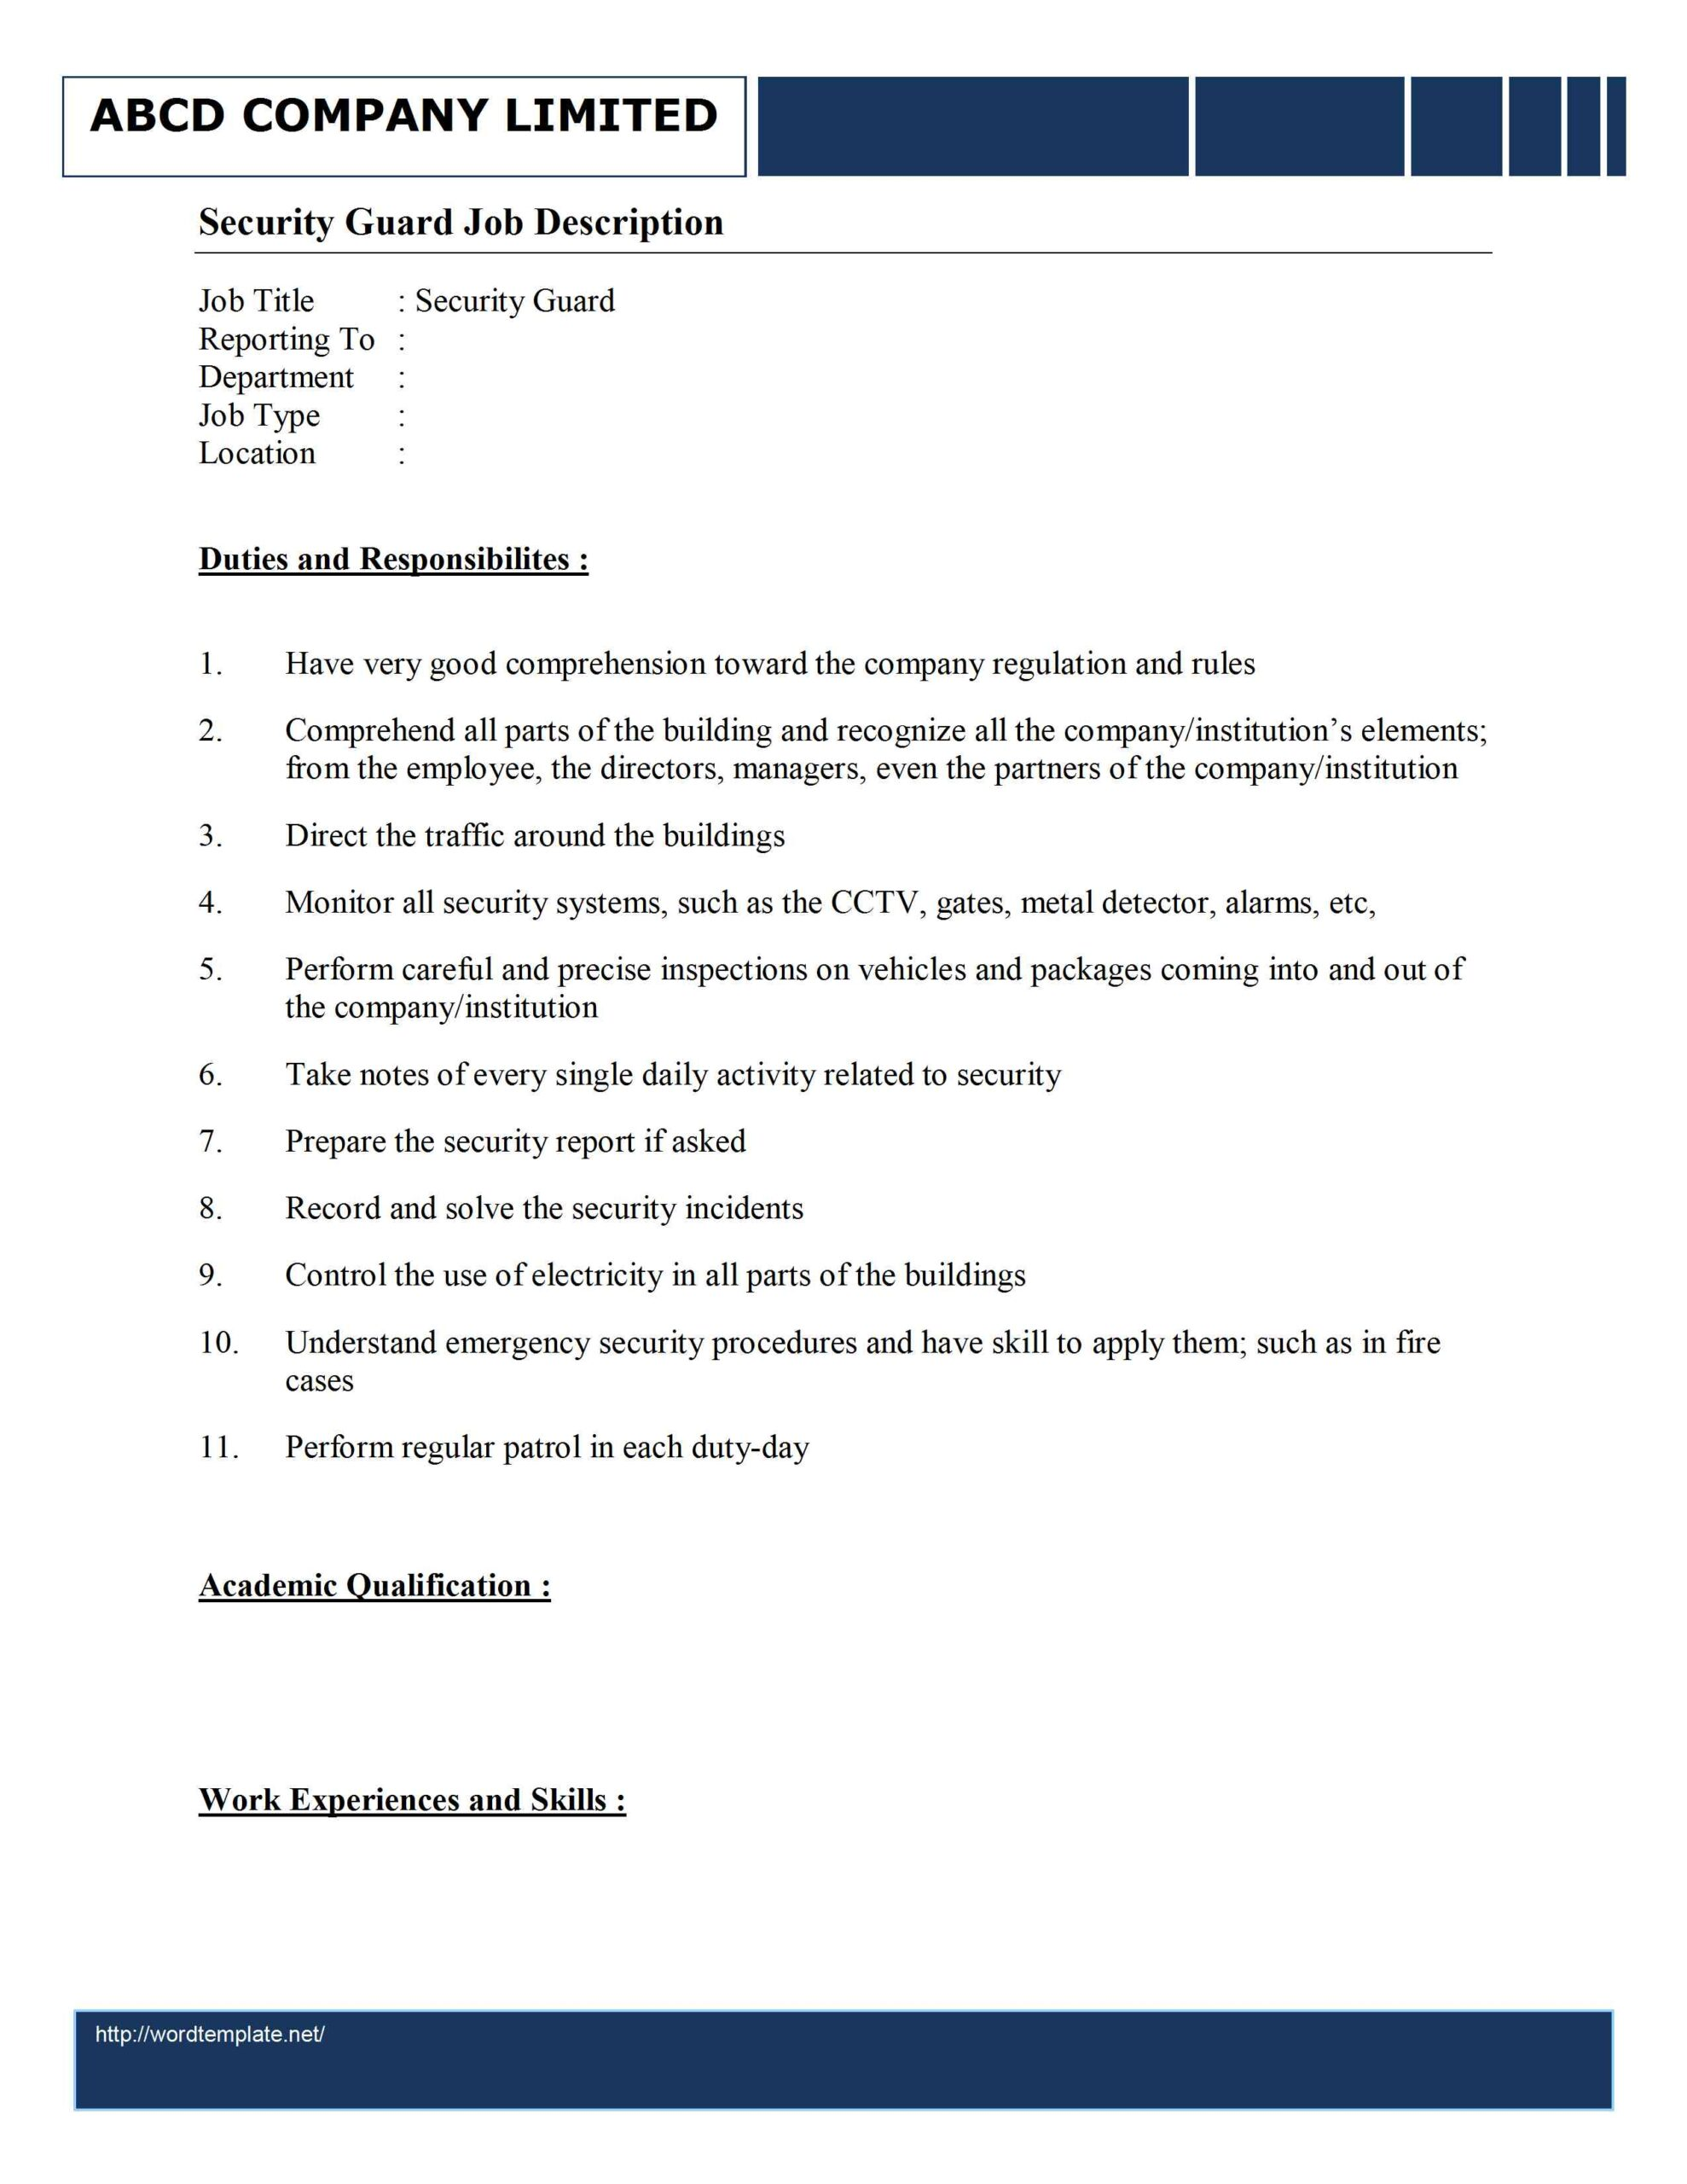 are the duties of security guard mryn ism officer job resume description audition and Resume Security Officer Job Duties Resume